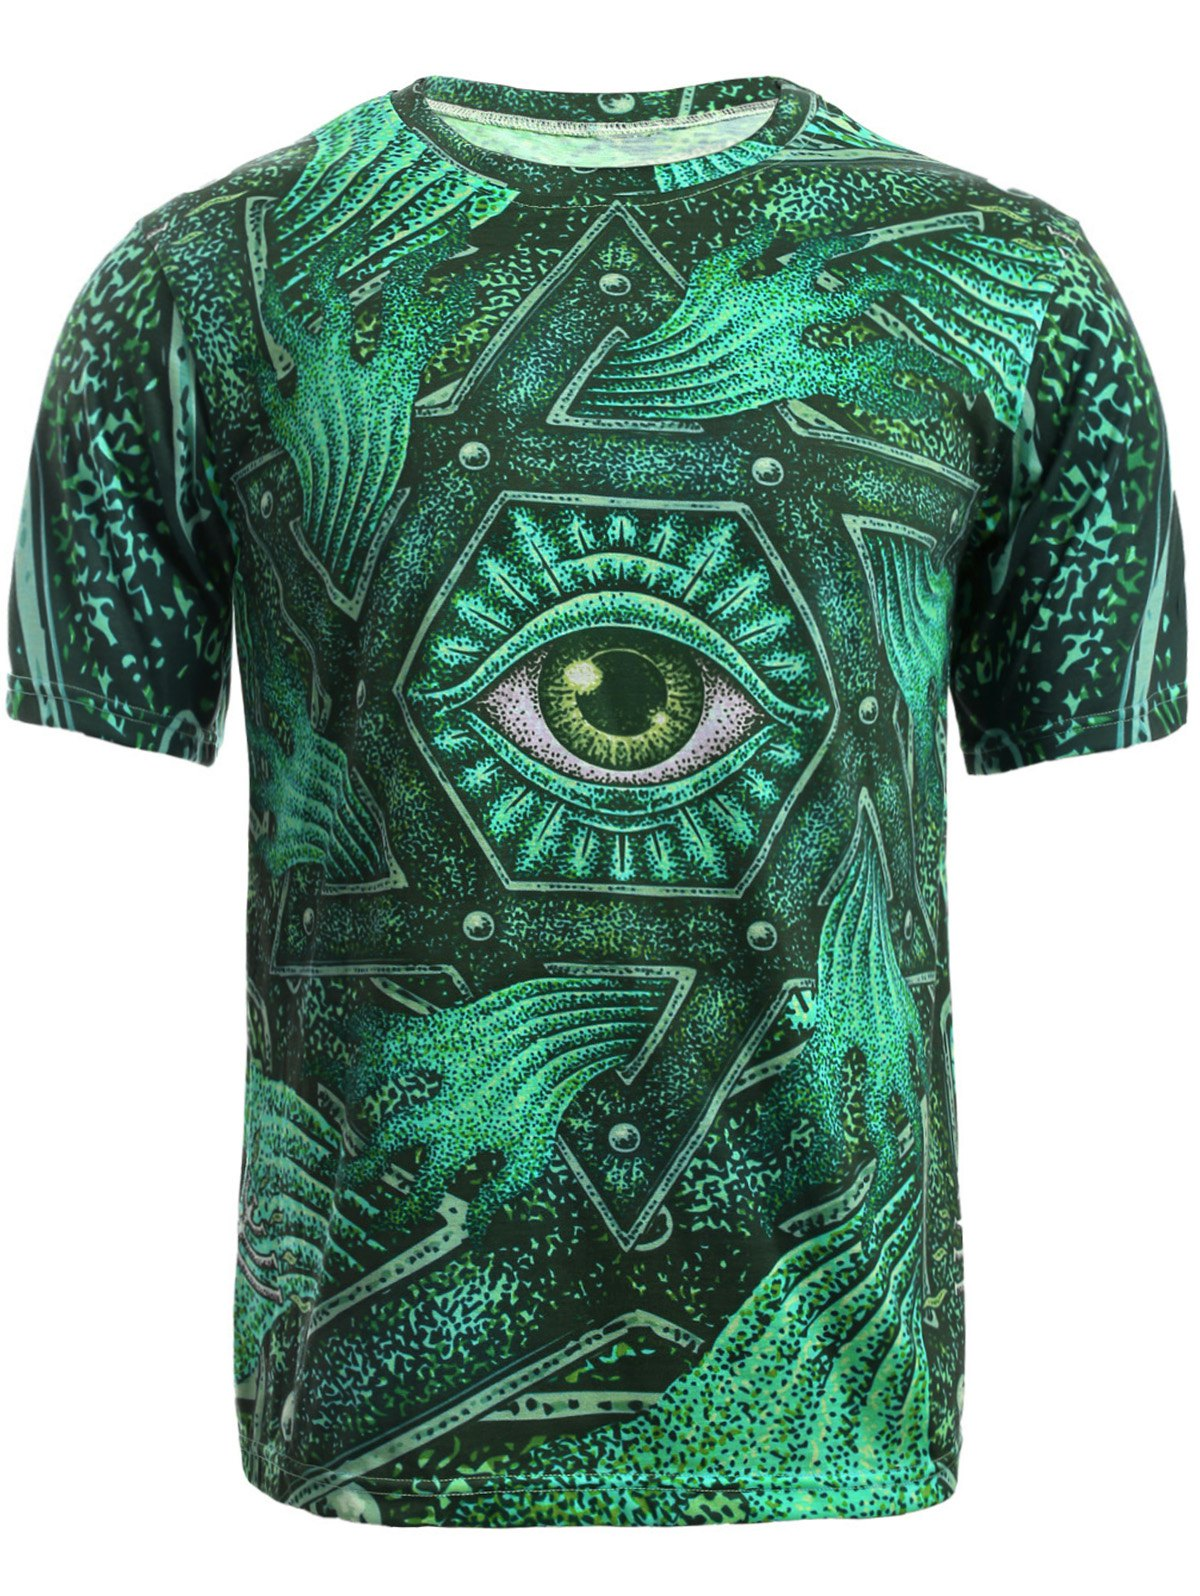 3D Geometric and Print Round Neck Short Sleeve T-Shirt For MenMEN<br><br>Size: L; Color: GREEN; Style: Fashion; Material: Cotton,Polyester; Sleeve Length: Short; Collar: Round Neck; Embellishment: 3D Print; Pattern Type: Geometric; Weight: 0.170kg; Package Contents: 1 x T-Shirt;